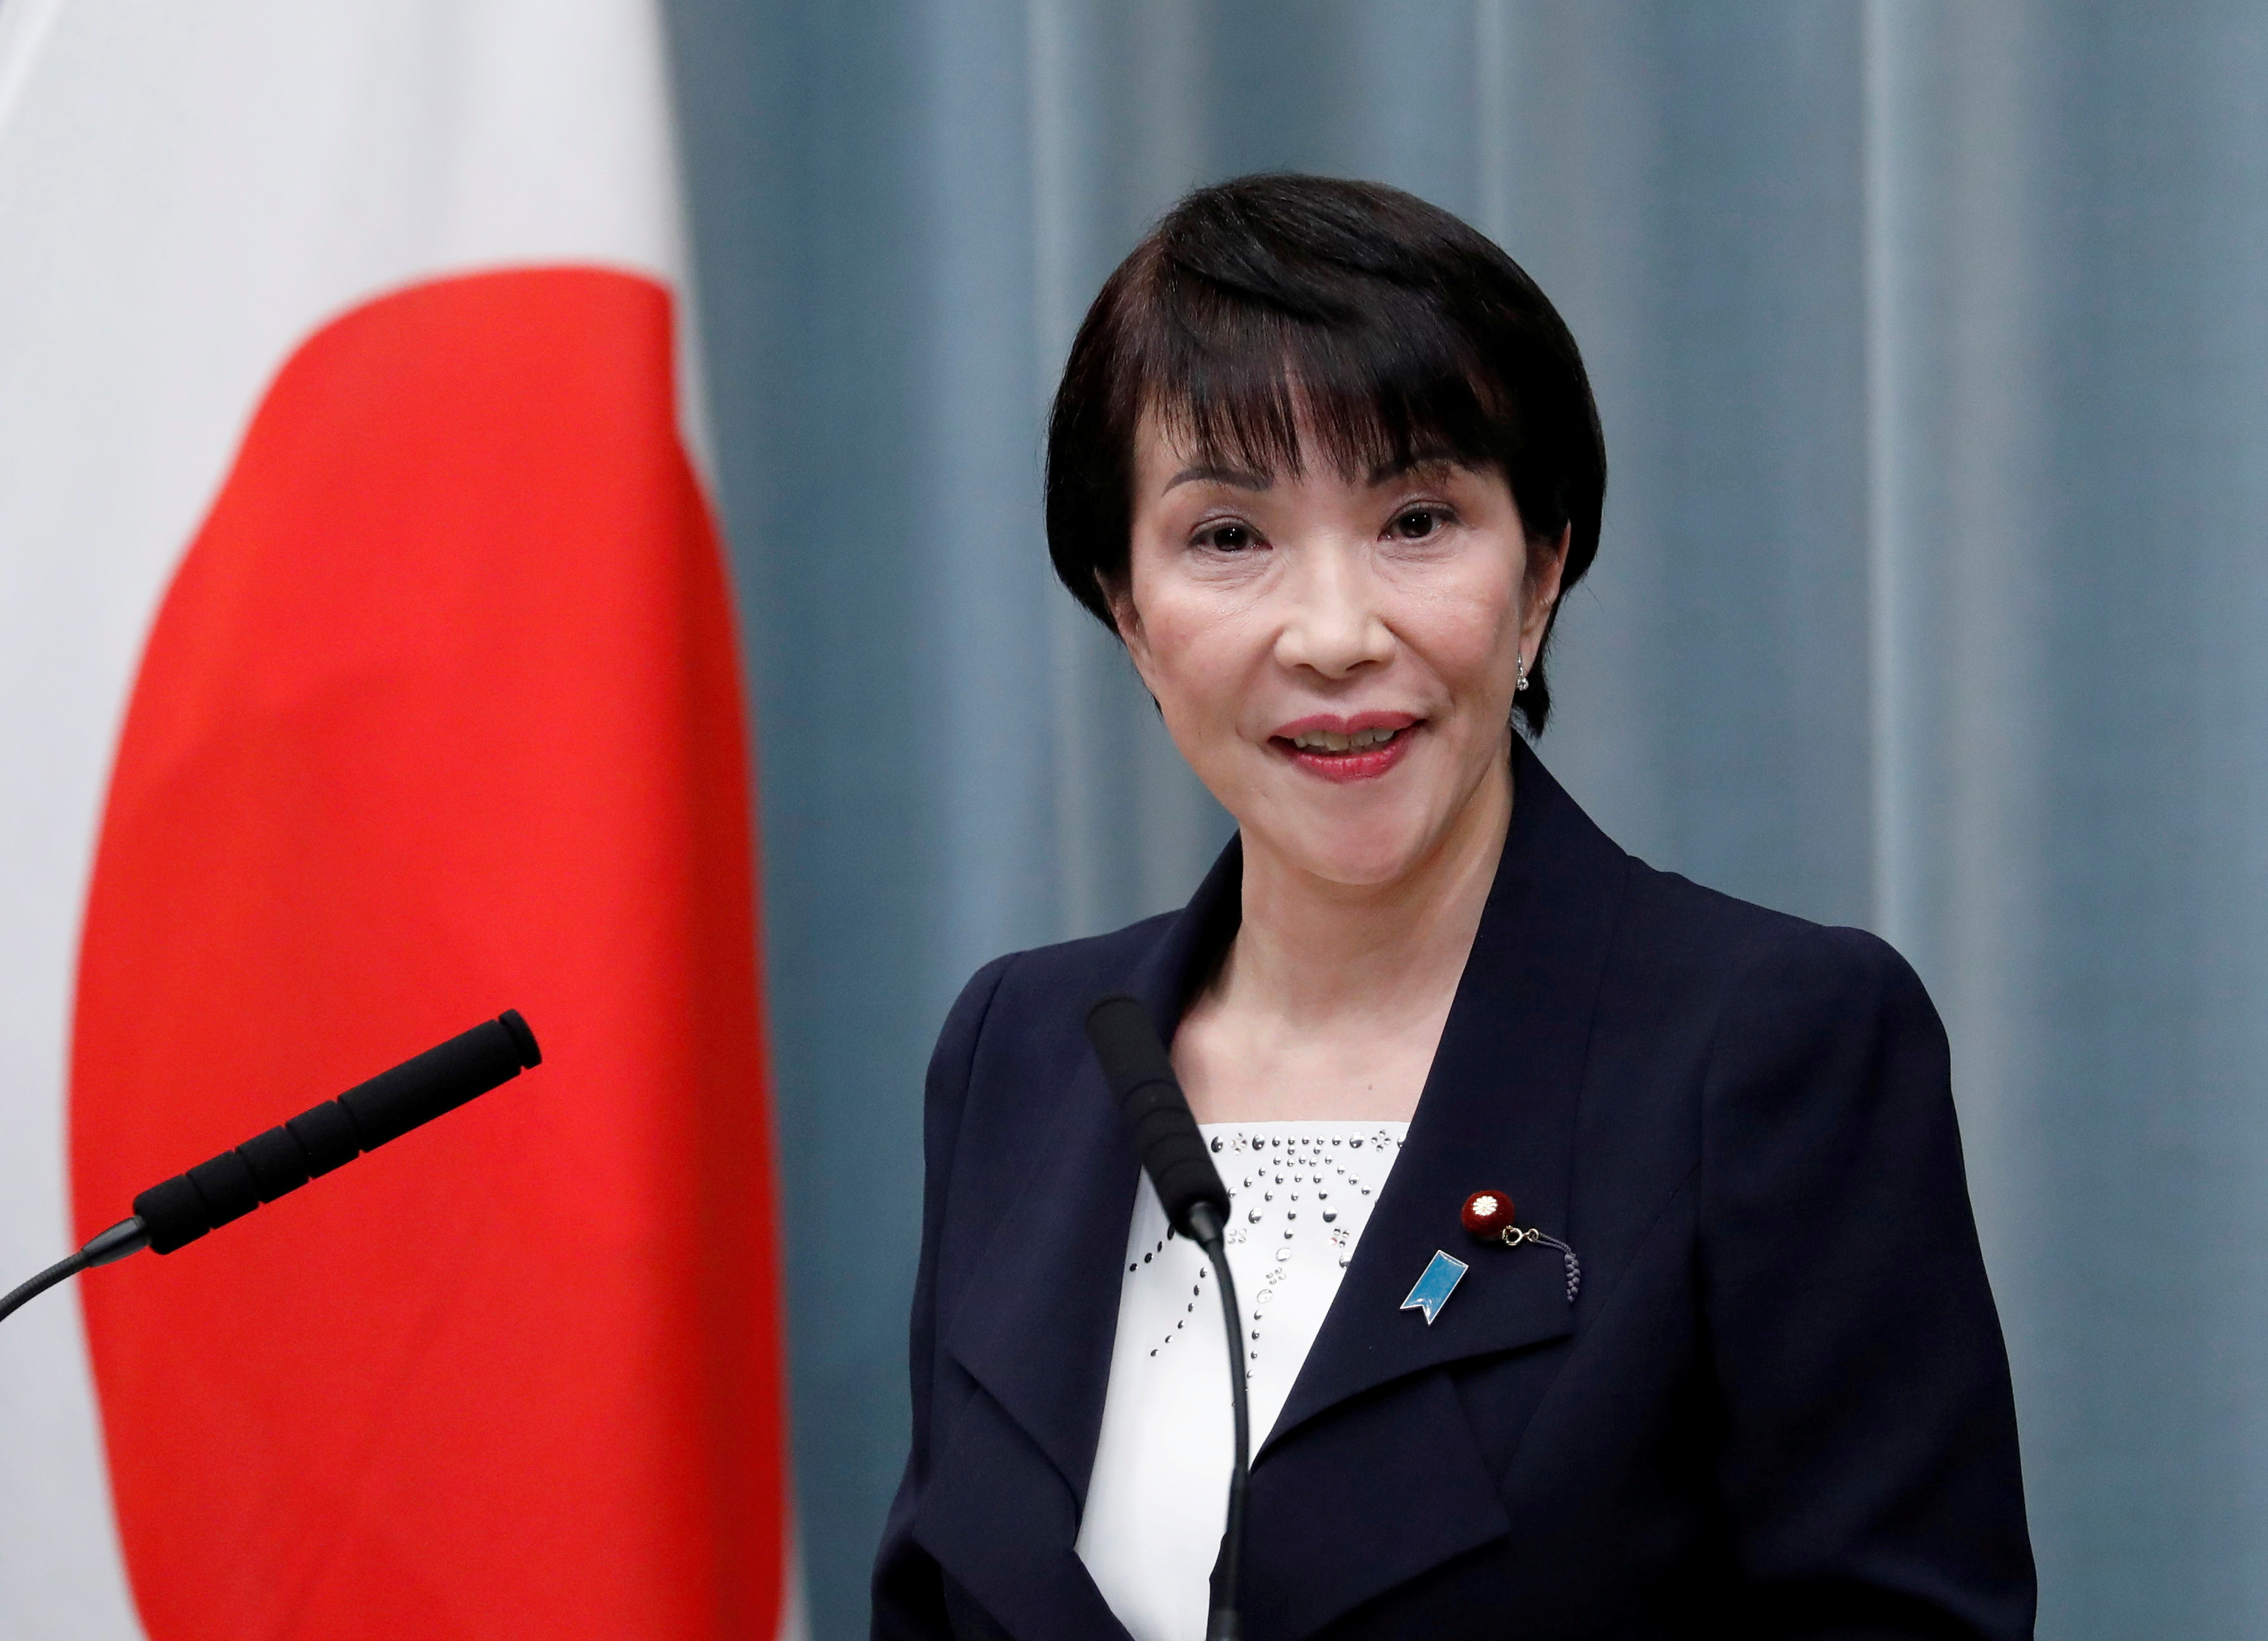 Japan's Internal Affairs Minister Sanae Takaichi attends a news conference at Prime Minister Shinzo Abe's official residence in Tokyo, Japan September 11, 2019. REUTERS/Issei Kato/File Photo